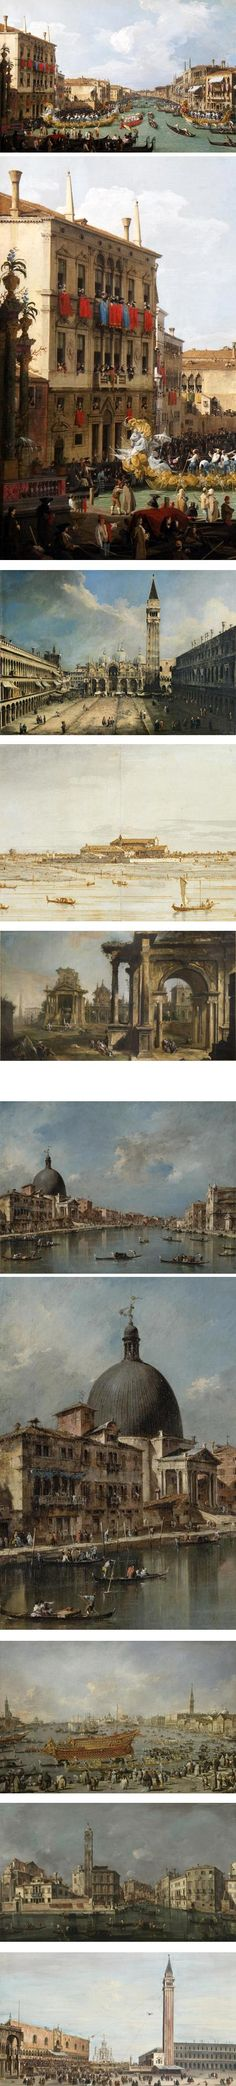 Views of Venice as portrayed by Giovanni Antonio Canal, better known as Canaletto, and Francesco Guardi